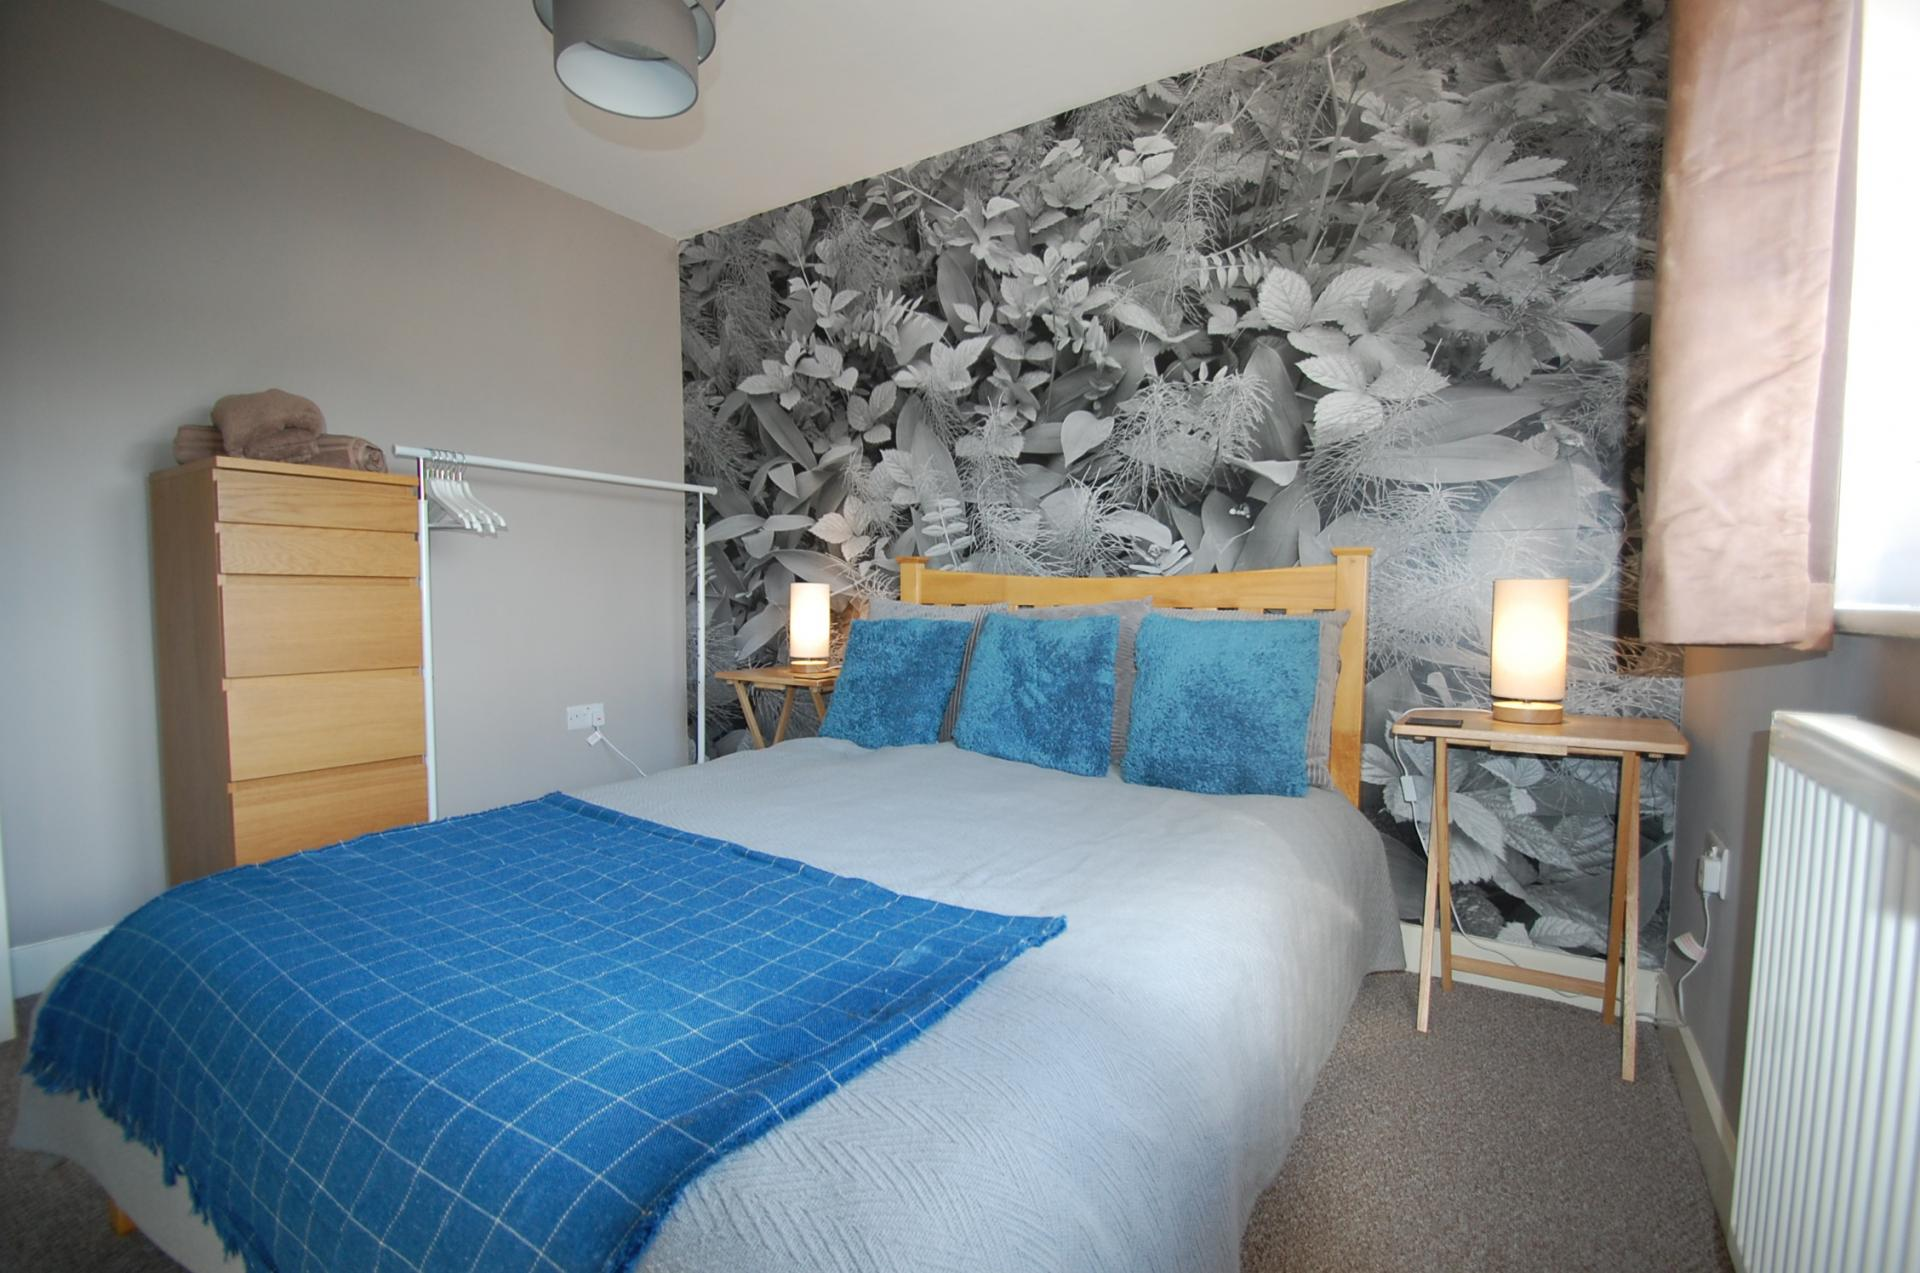 Bedroom Furniture at Cosy Dragon @ Tanglewood House - Citybase Apartments